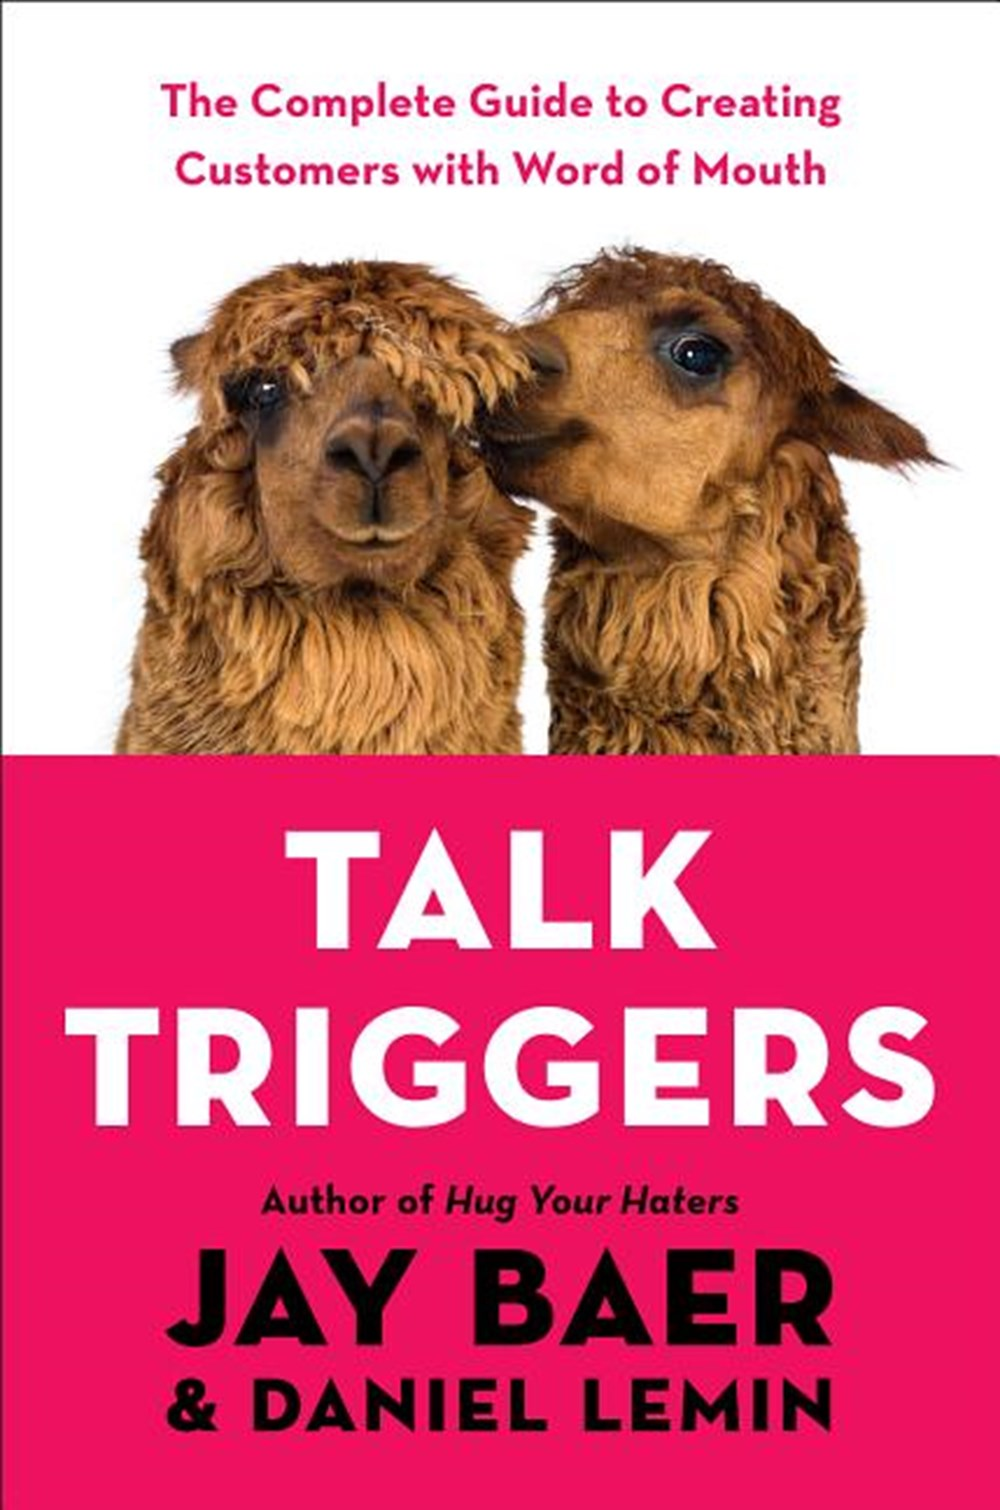 Talk Triggers The Complete Guide to Creating Customers with Word of Mouth